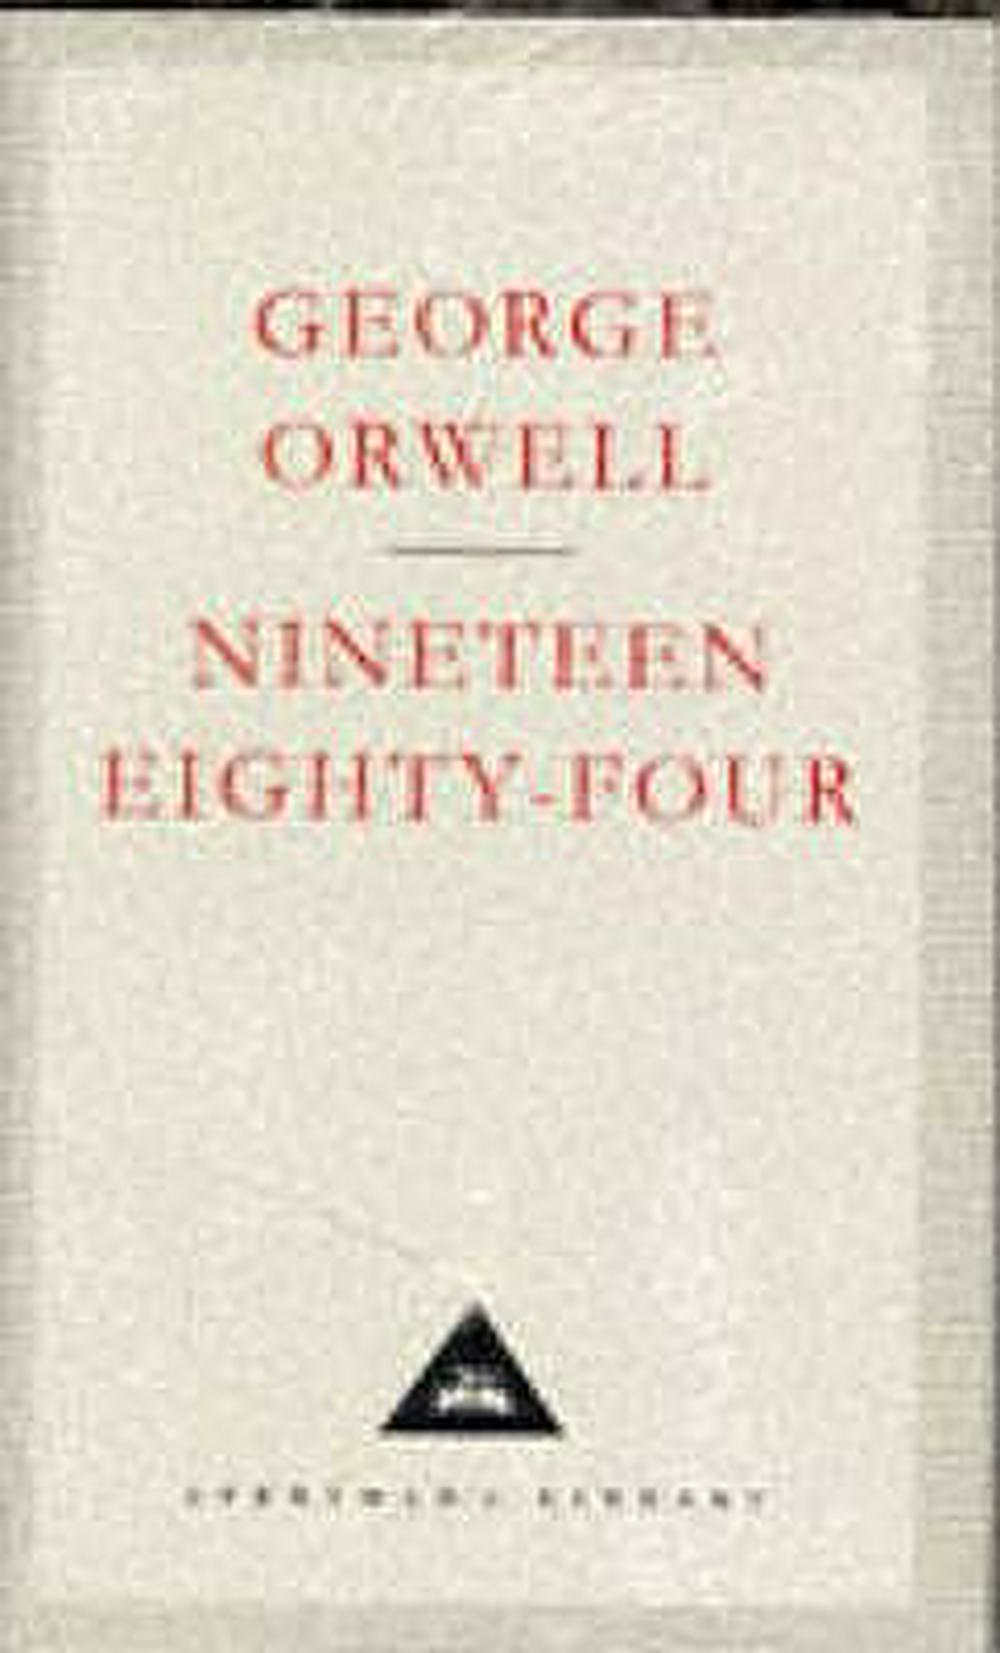 an analysis of nineteen eighty four as a tale of future society Most dystopian novels contain themes of corruption and oppression, therefore in both 'the handmaid's tale' and 'nineteen eighty four' language is obviously used as a form of the states control, enabling dystopian leaders to remain in power by manipulating language to restrict free thought.